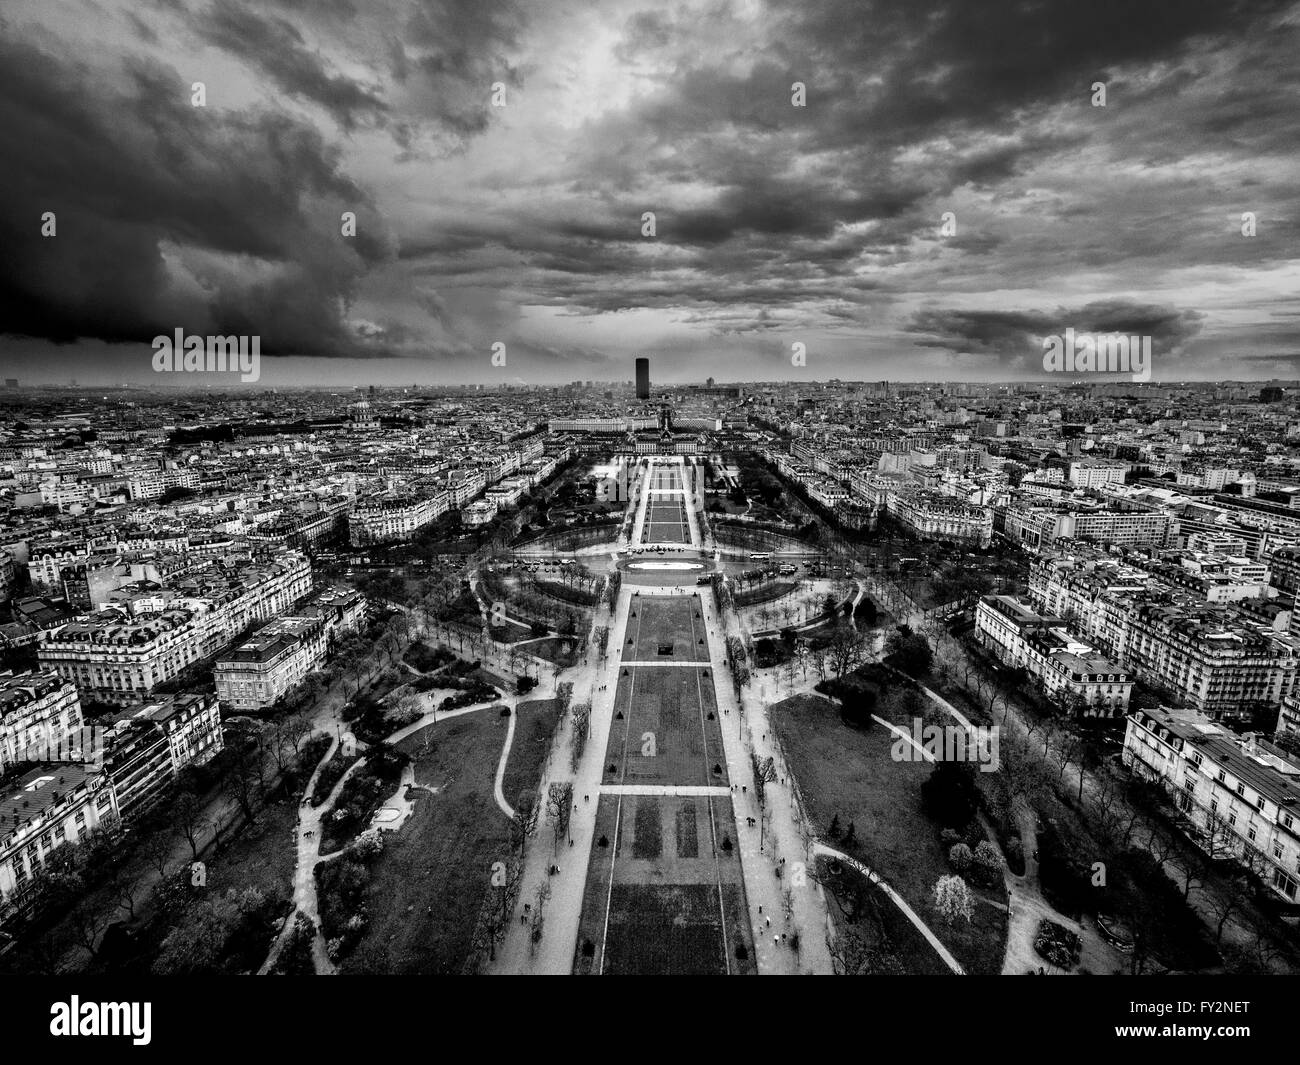 Champ de Mars, with Montparnasse Tower in background, Paris, France. - Stock Image